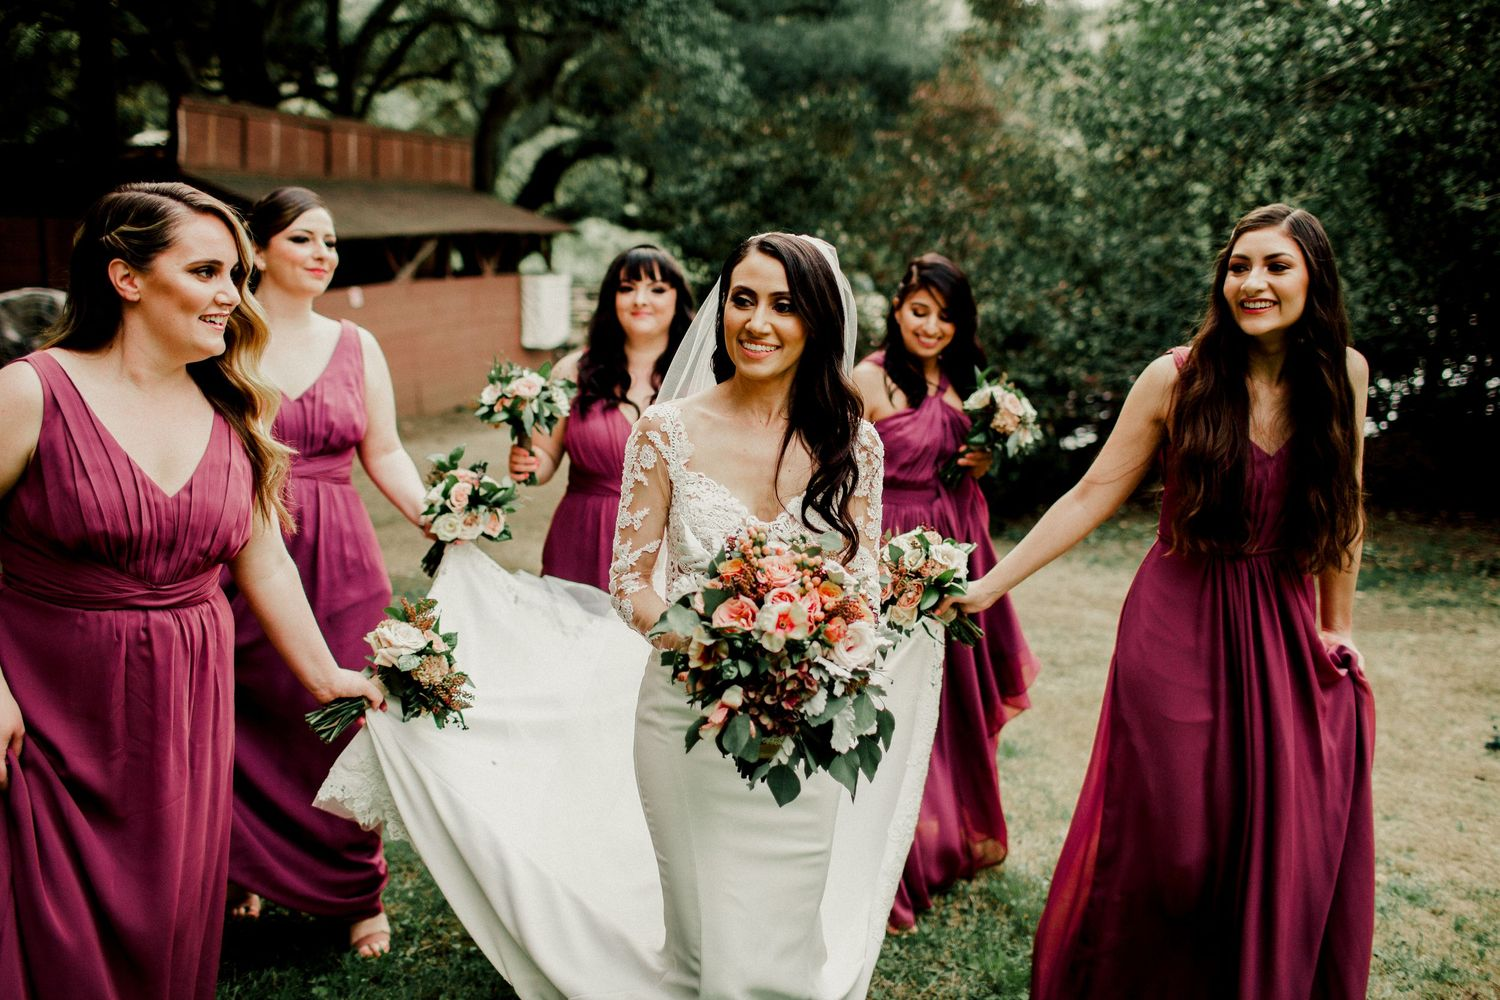 bridesmaids walking with bride helping with dress